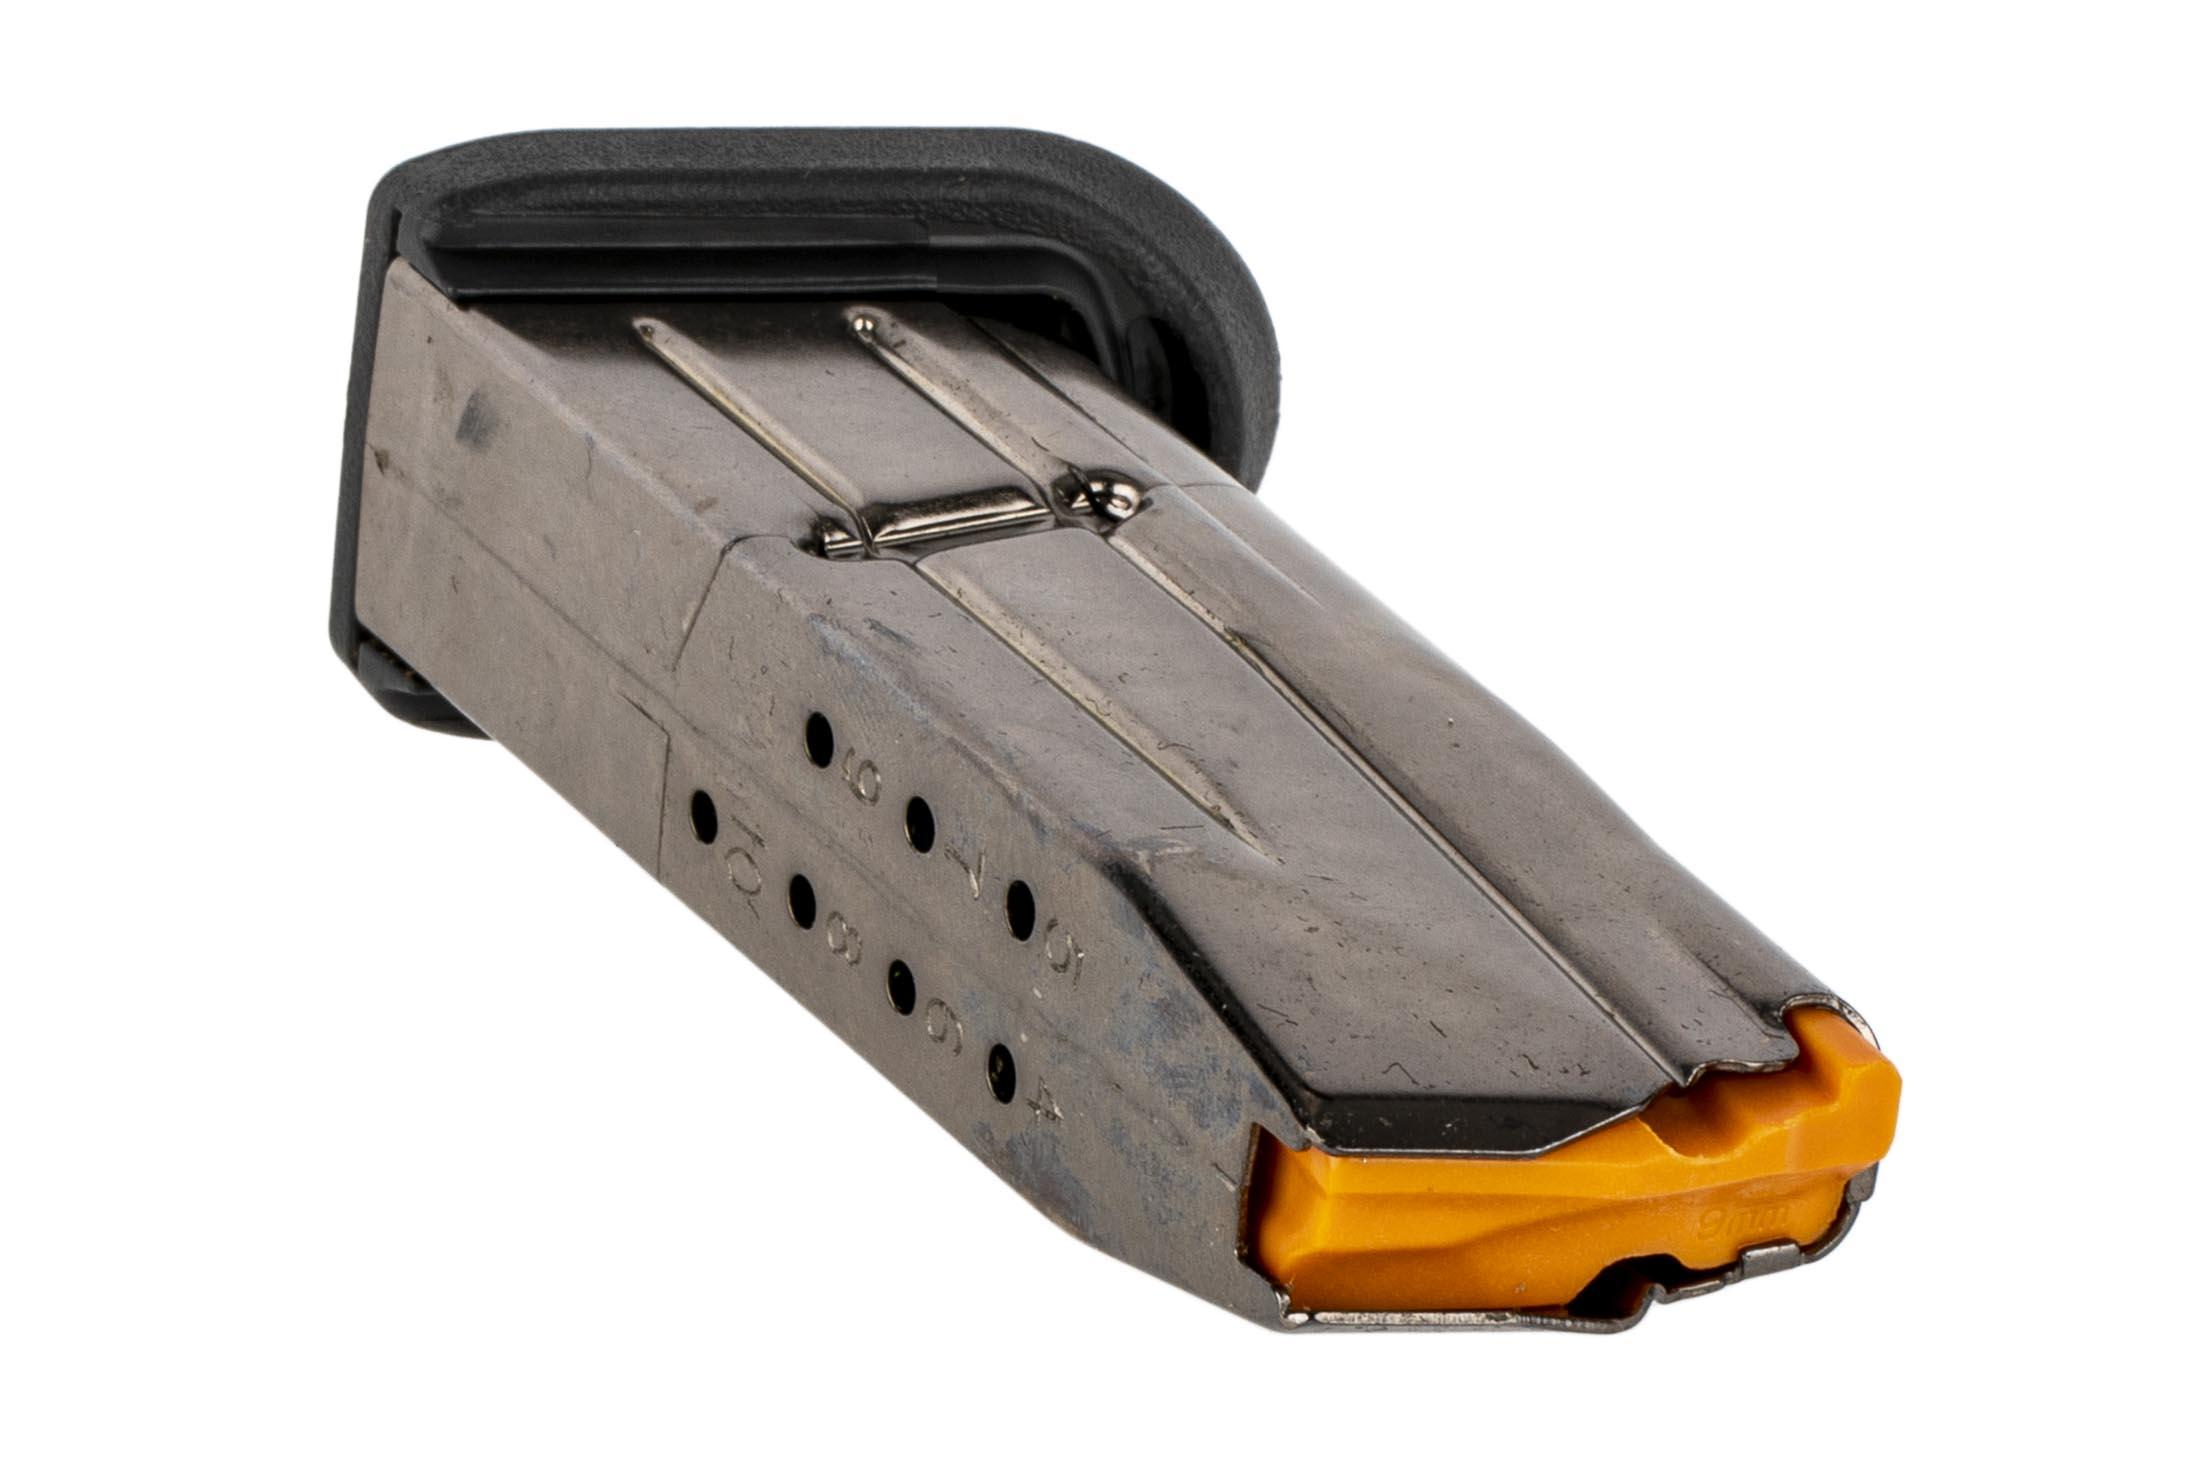 The FN FNS-9C 10 round magazine features rear witness holes to check ammo count